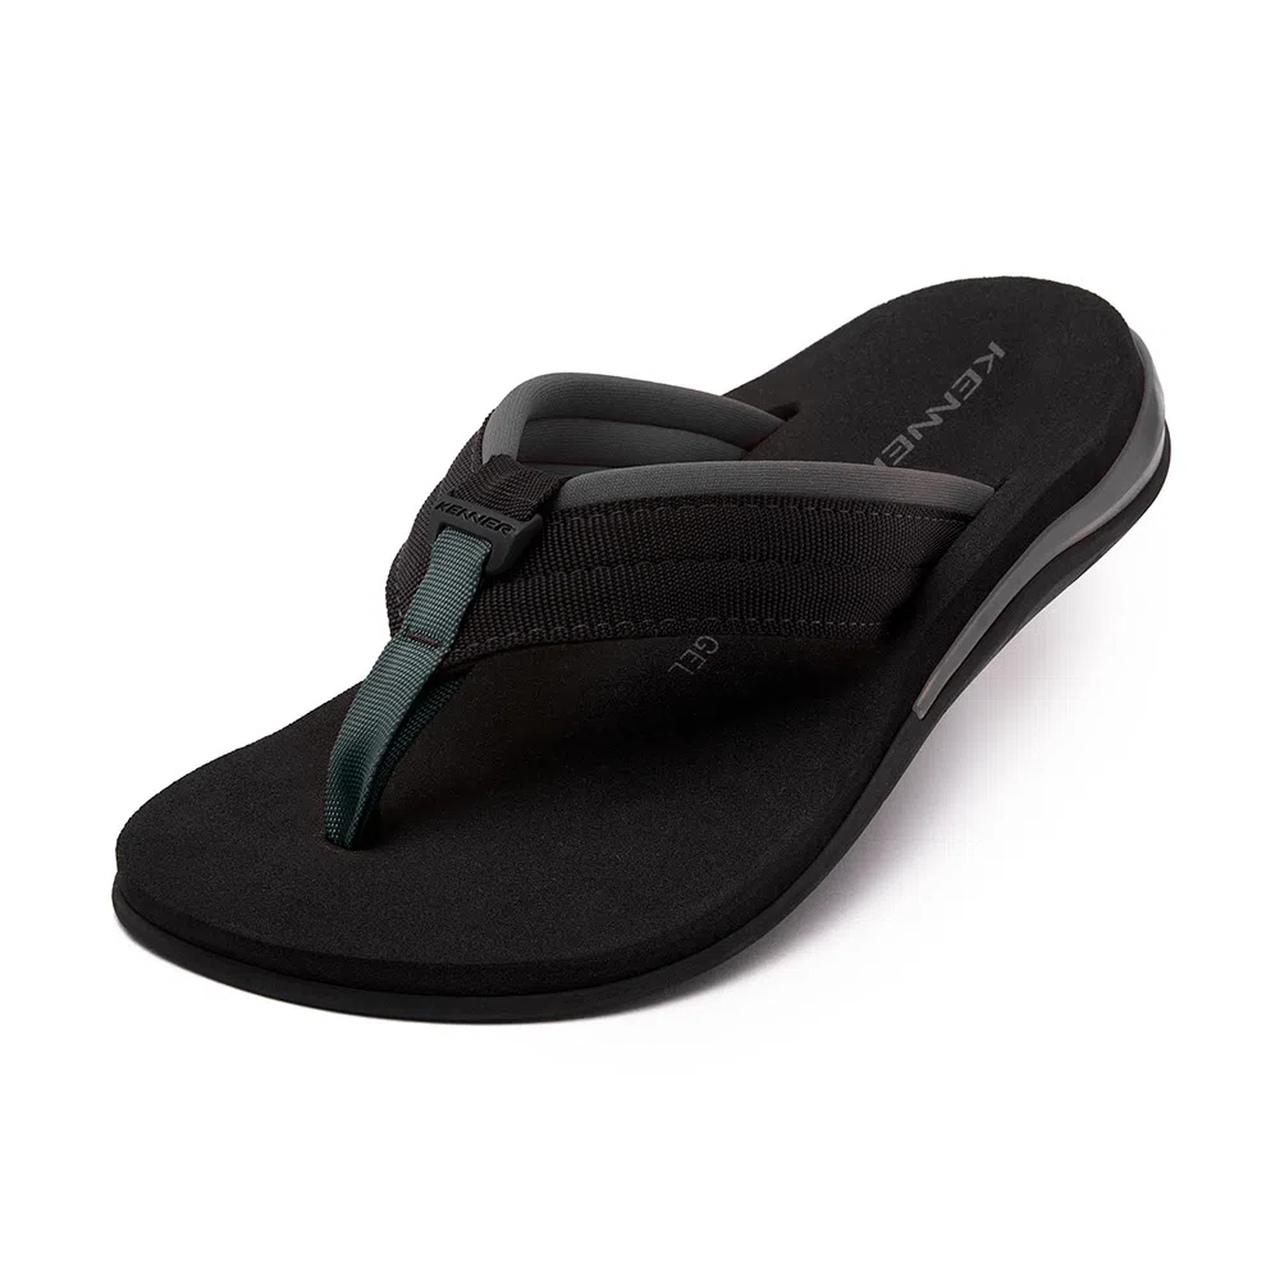 CHINELO KENNER ACTION GEL CINZA E PRETO